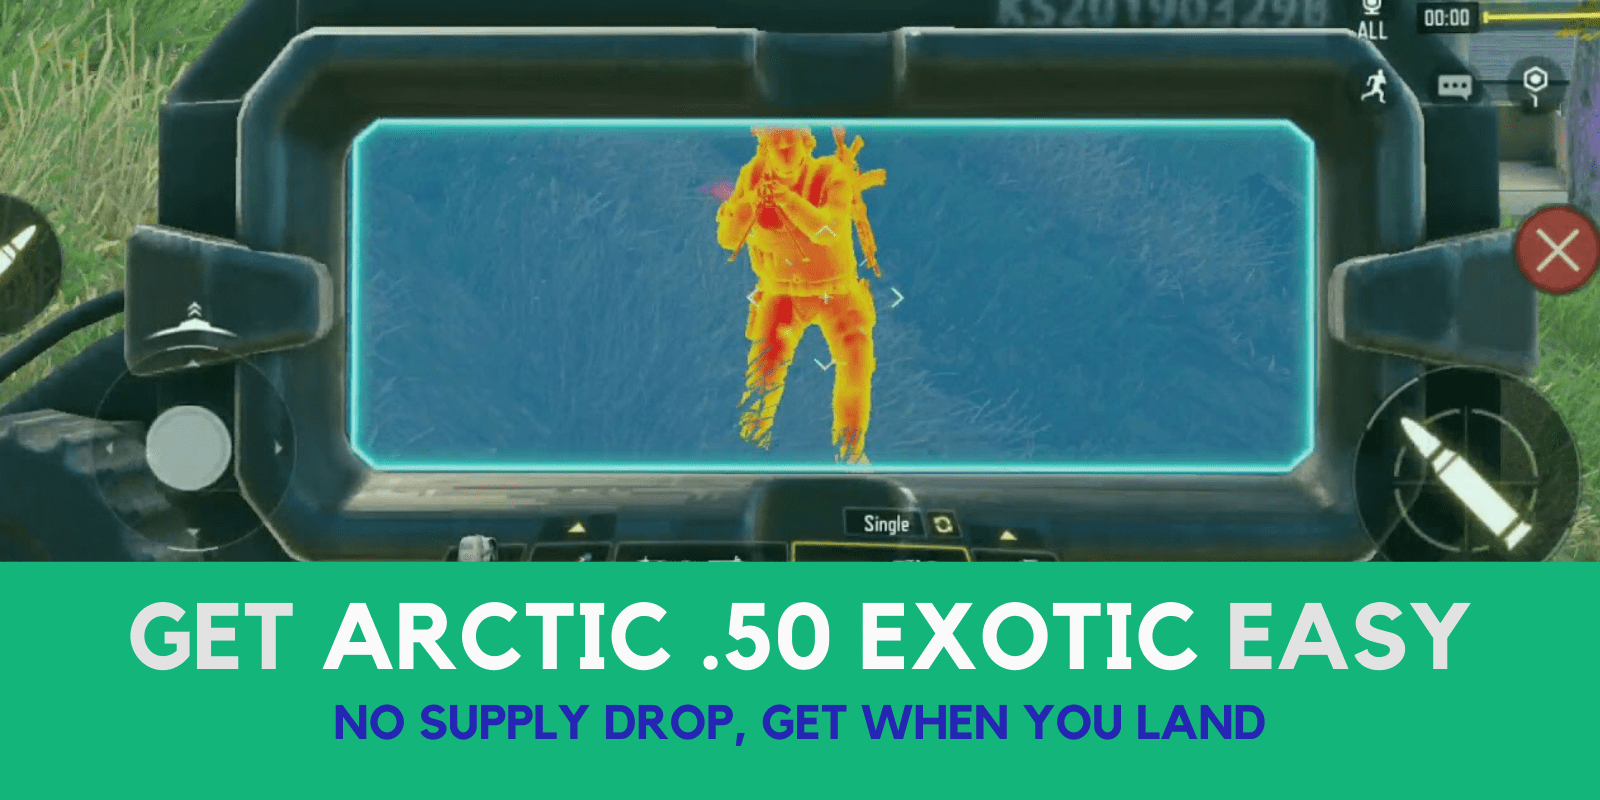 Get the Arctic .50 (Exotic) Easy and Every time (Not Supply Drop)